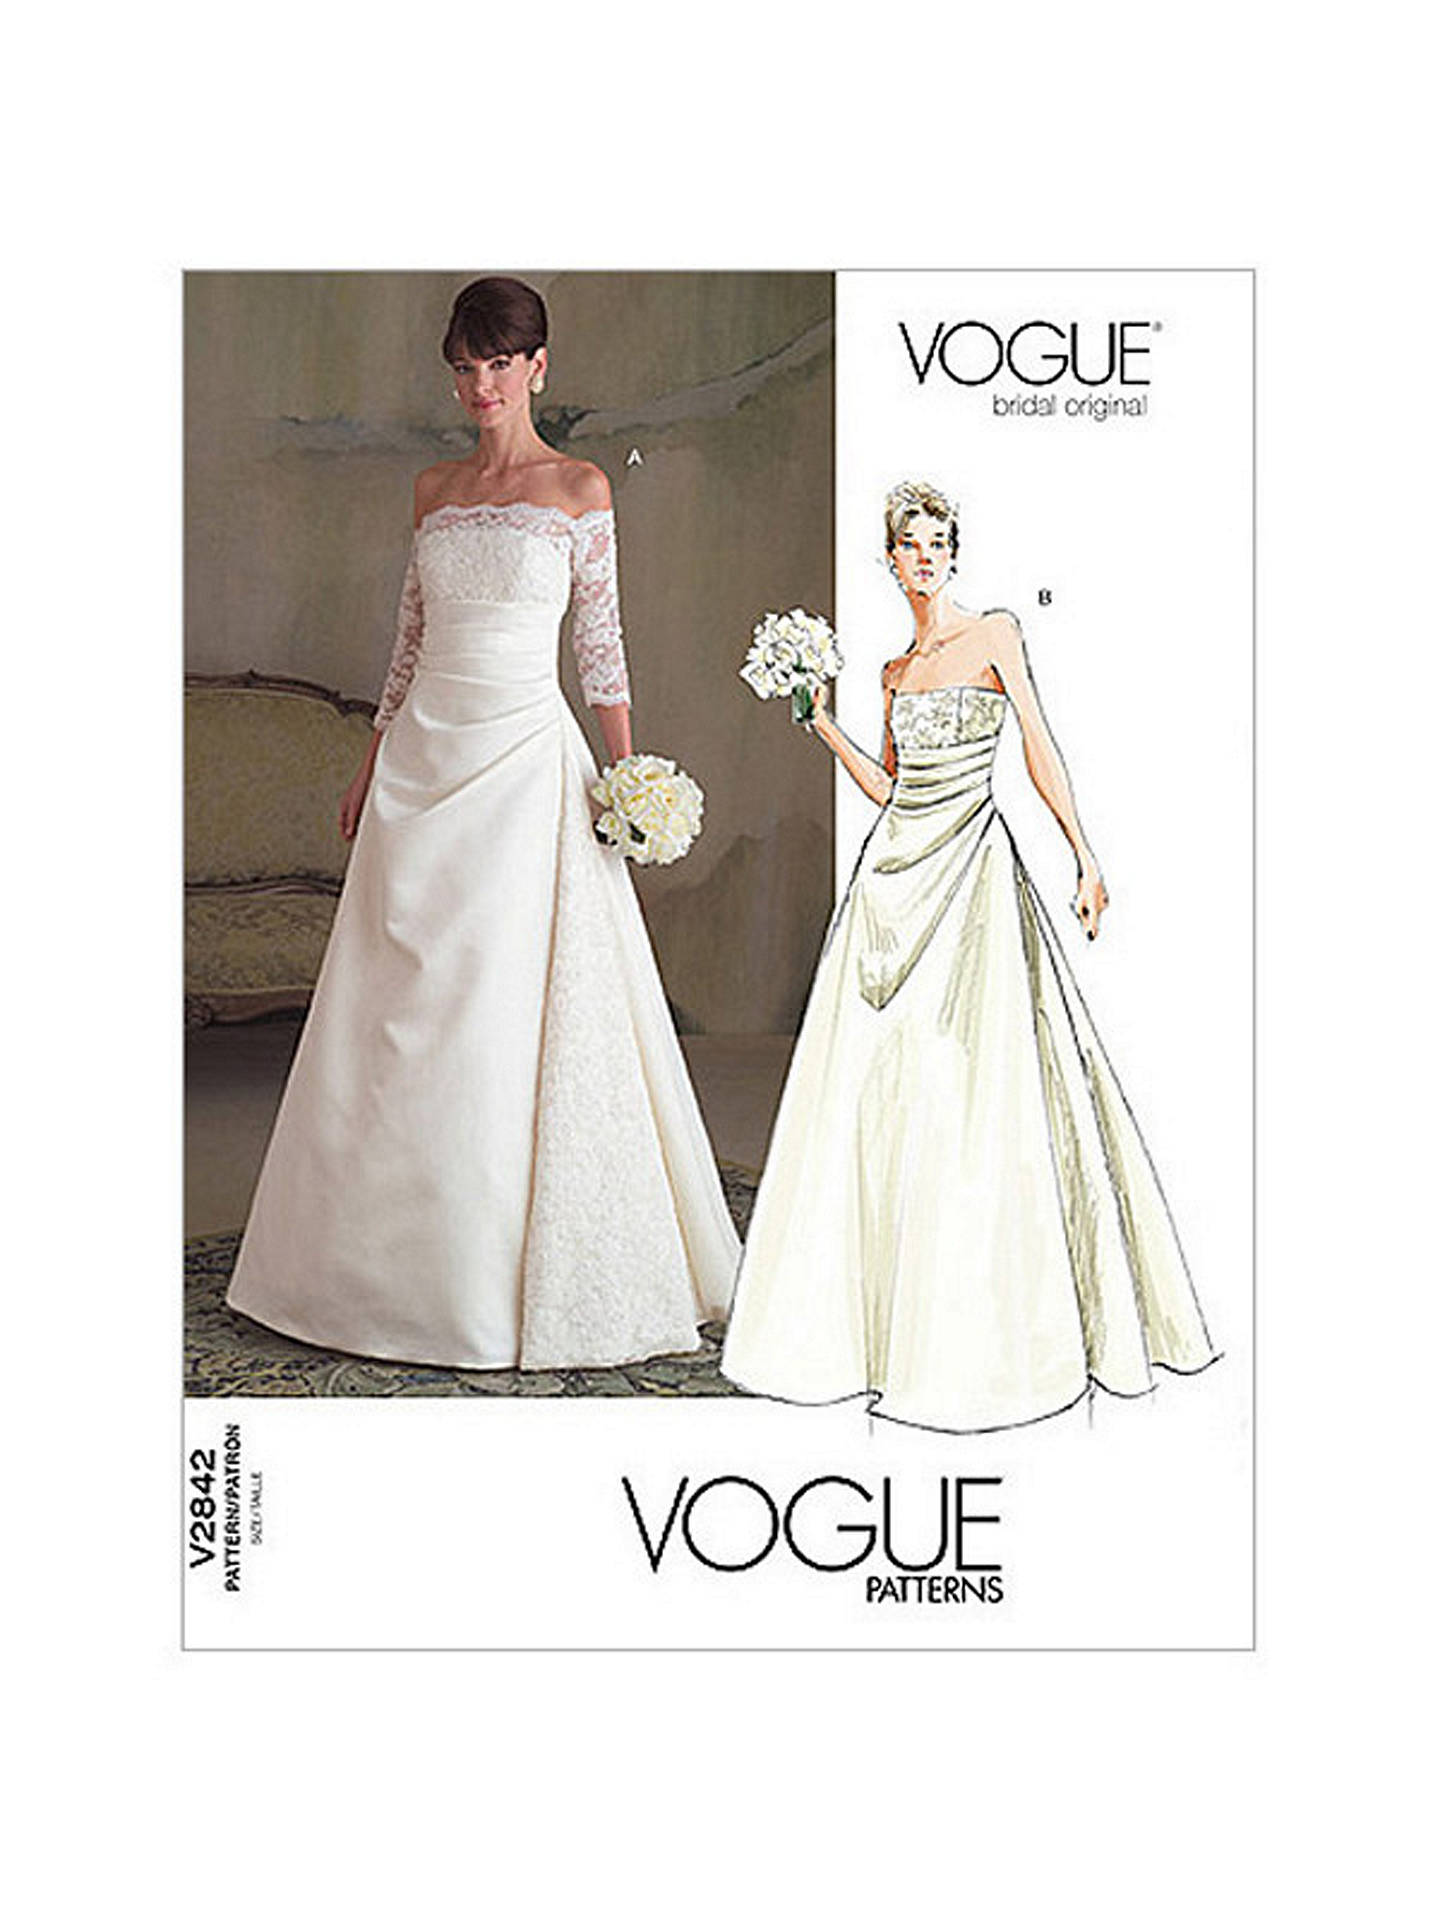 Vogue Women S Bridal Original Dress Sewing Pattern 2842a Online At Johnlewis